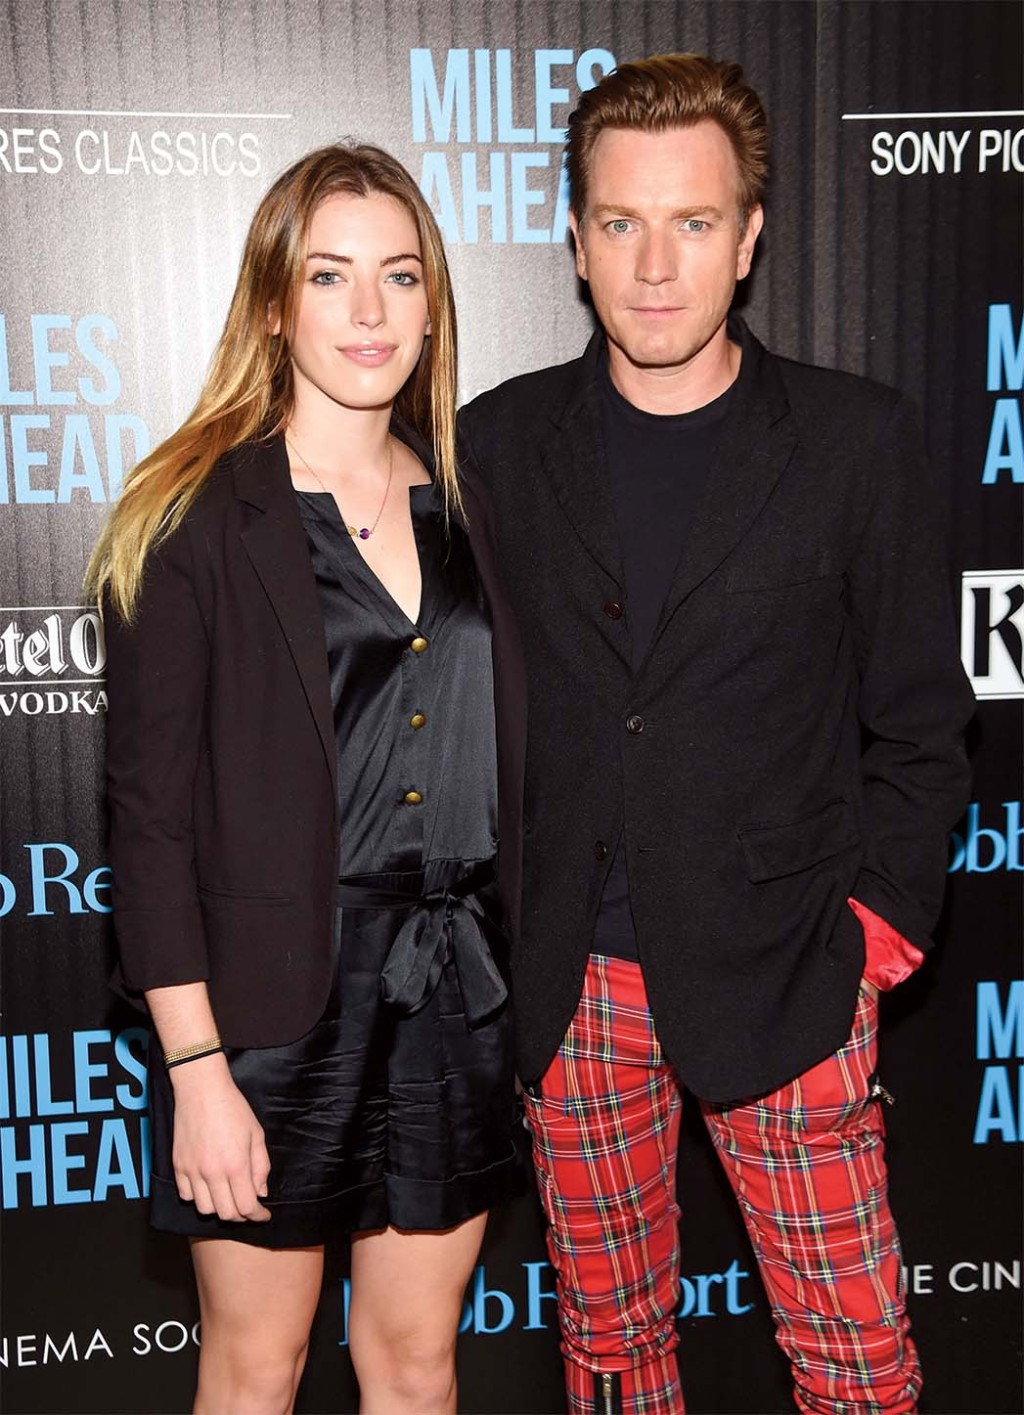 Clara McGregor and actor Ewan McGregor